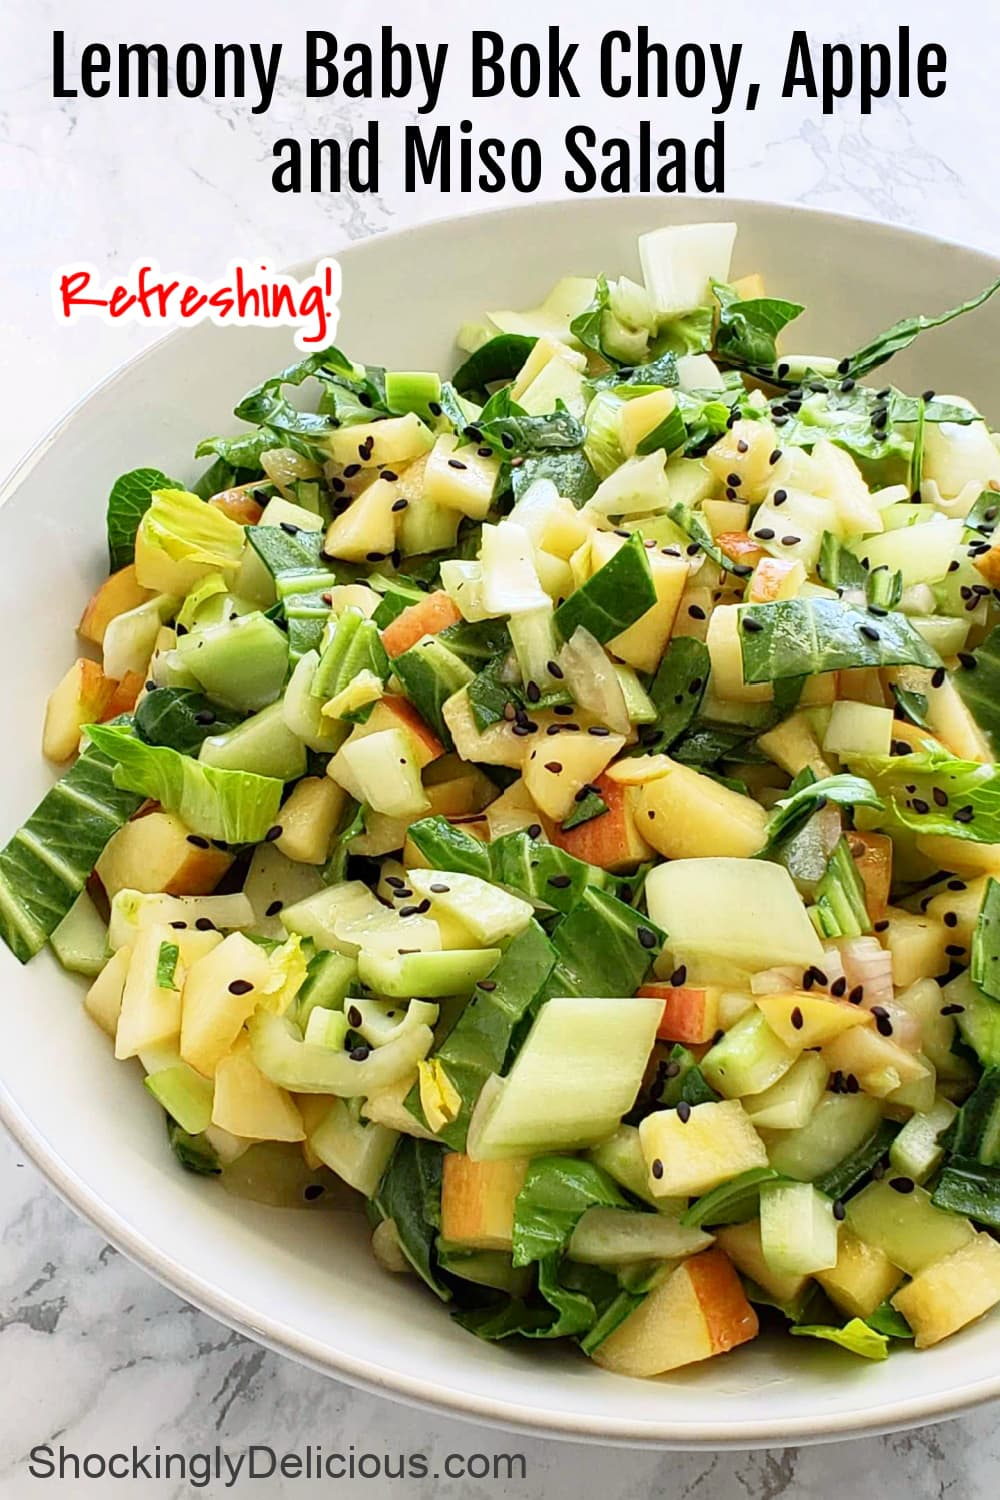 Lemony Baby Bok Choy, Apple and Miso Salad with recipe title superimposed on top of the photocom